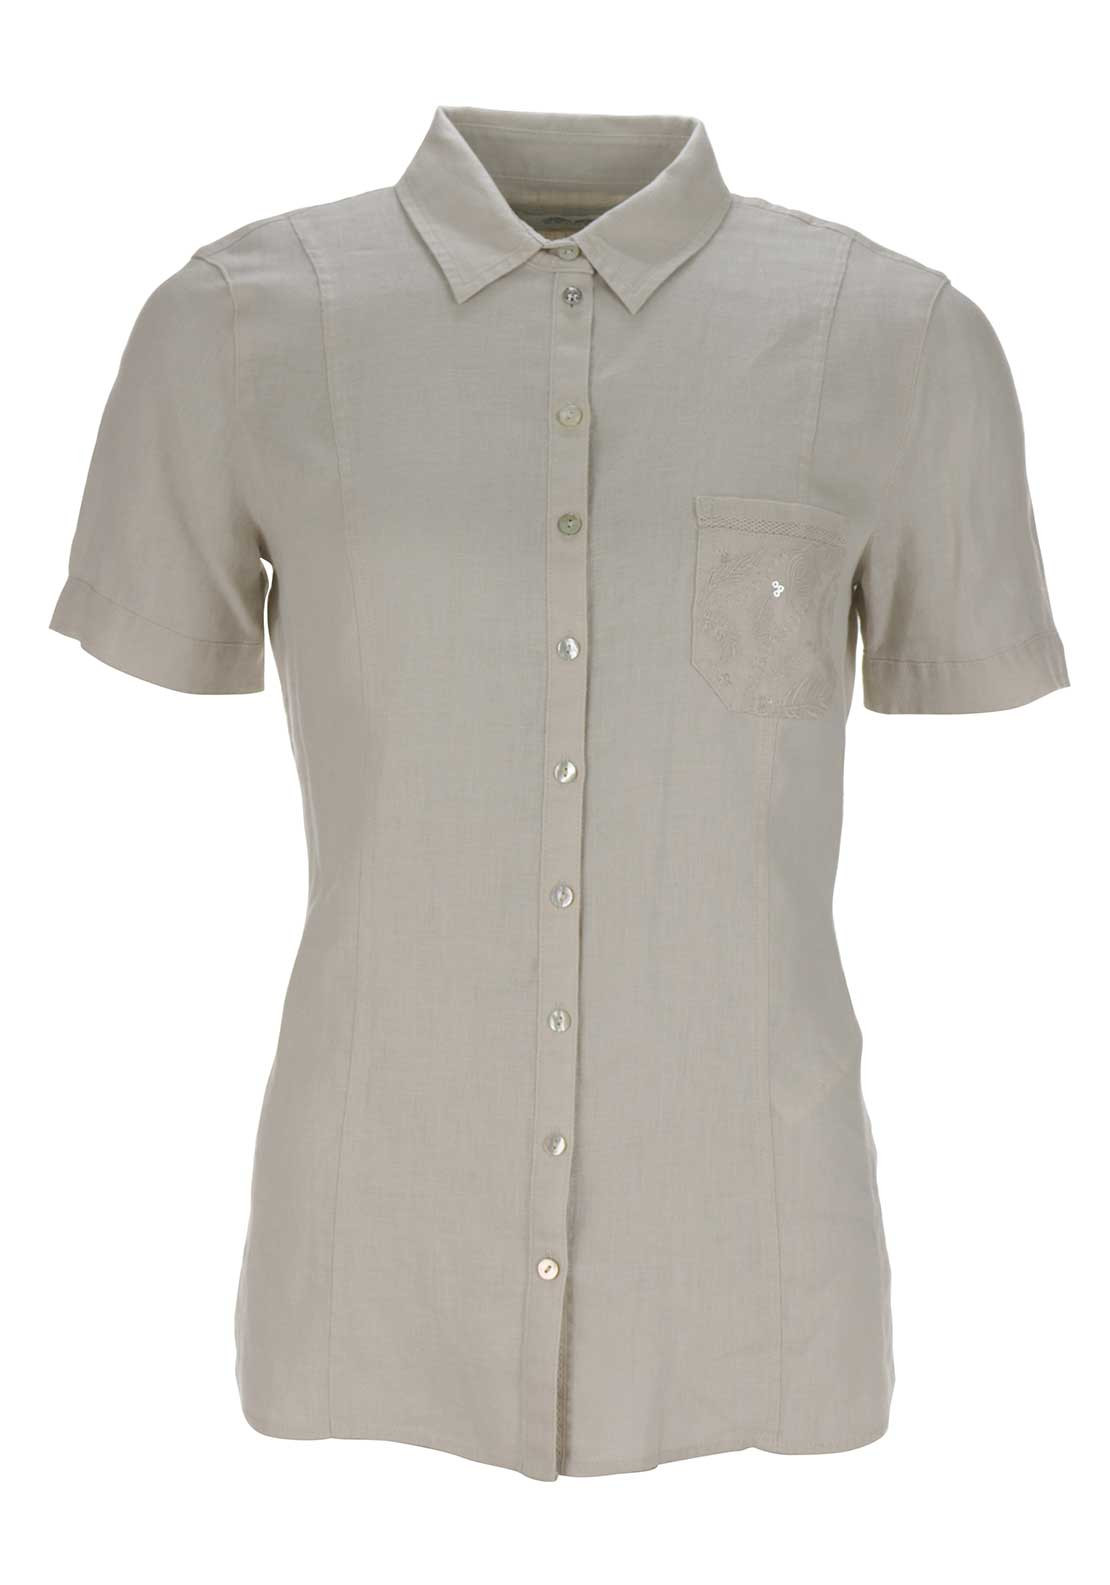 Gerry Weber Embellished Pocket Short Sleeve Blouse, Beige